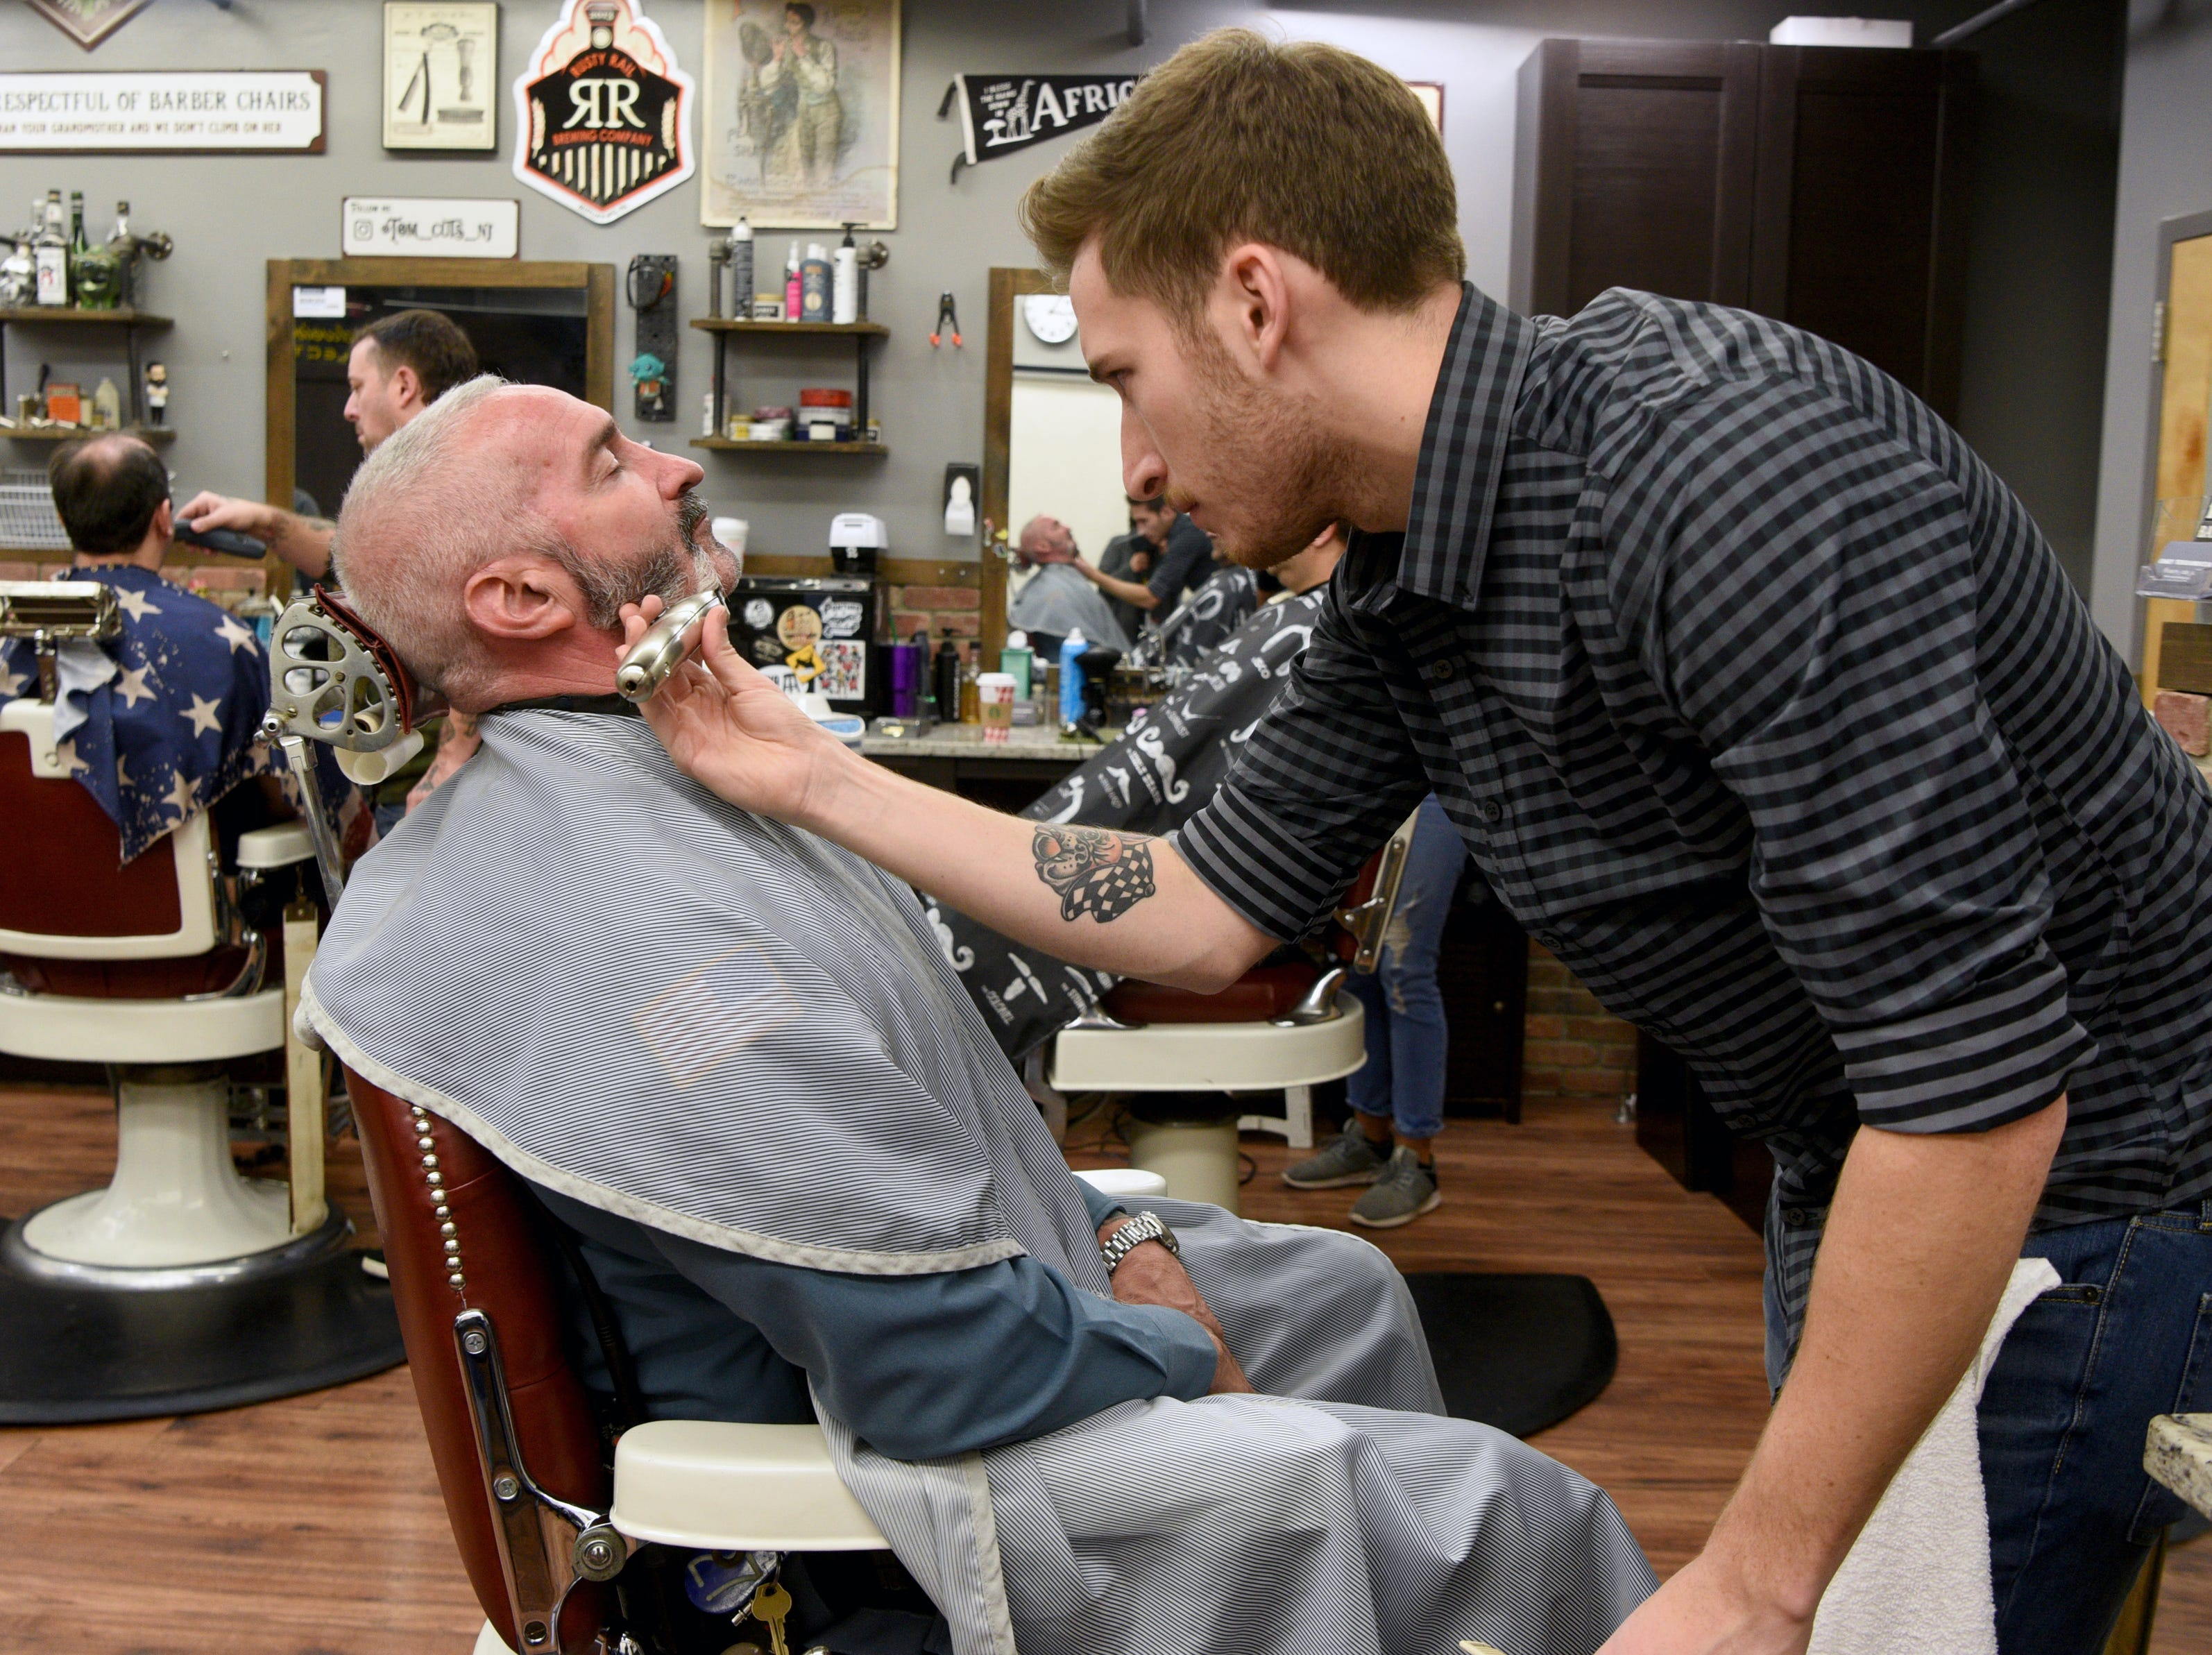 Ridgewood police Patrolman Patrick Elwood gets a shave from Casey Terramoccia, owner of Iconic Barber Shop. The Ridgewood, Wyckoff and Franklin Lakes PBAs held their No-Shave November Annual Shave-Off at Iconic Barber Shop in Glen Rock on Sunday, December 2, 2018. The money raised will help a Ridgewood family pay medical bills. Iconic Barber Shop also donated 100% percent of the proceeds from Sunday morning's Shave-Off.